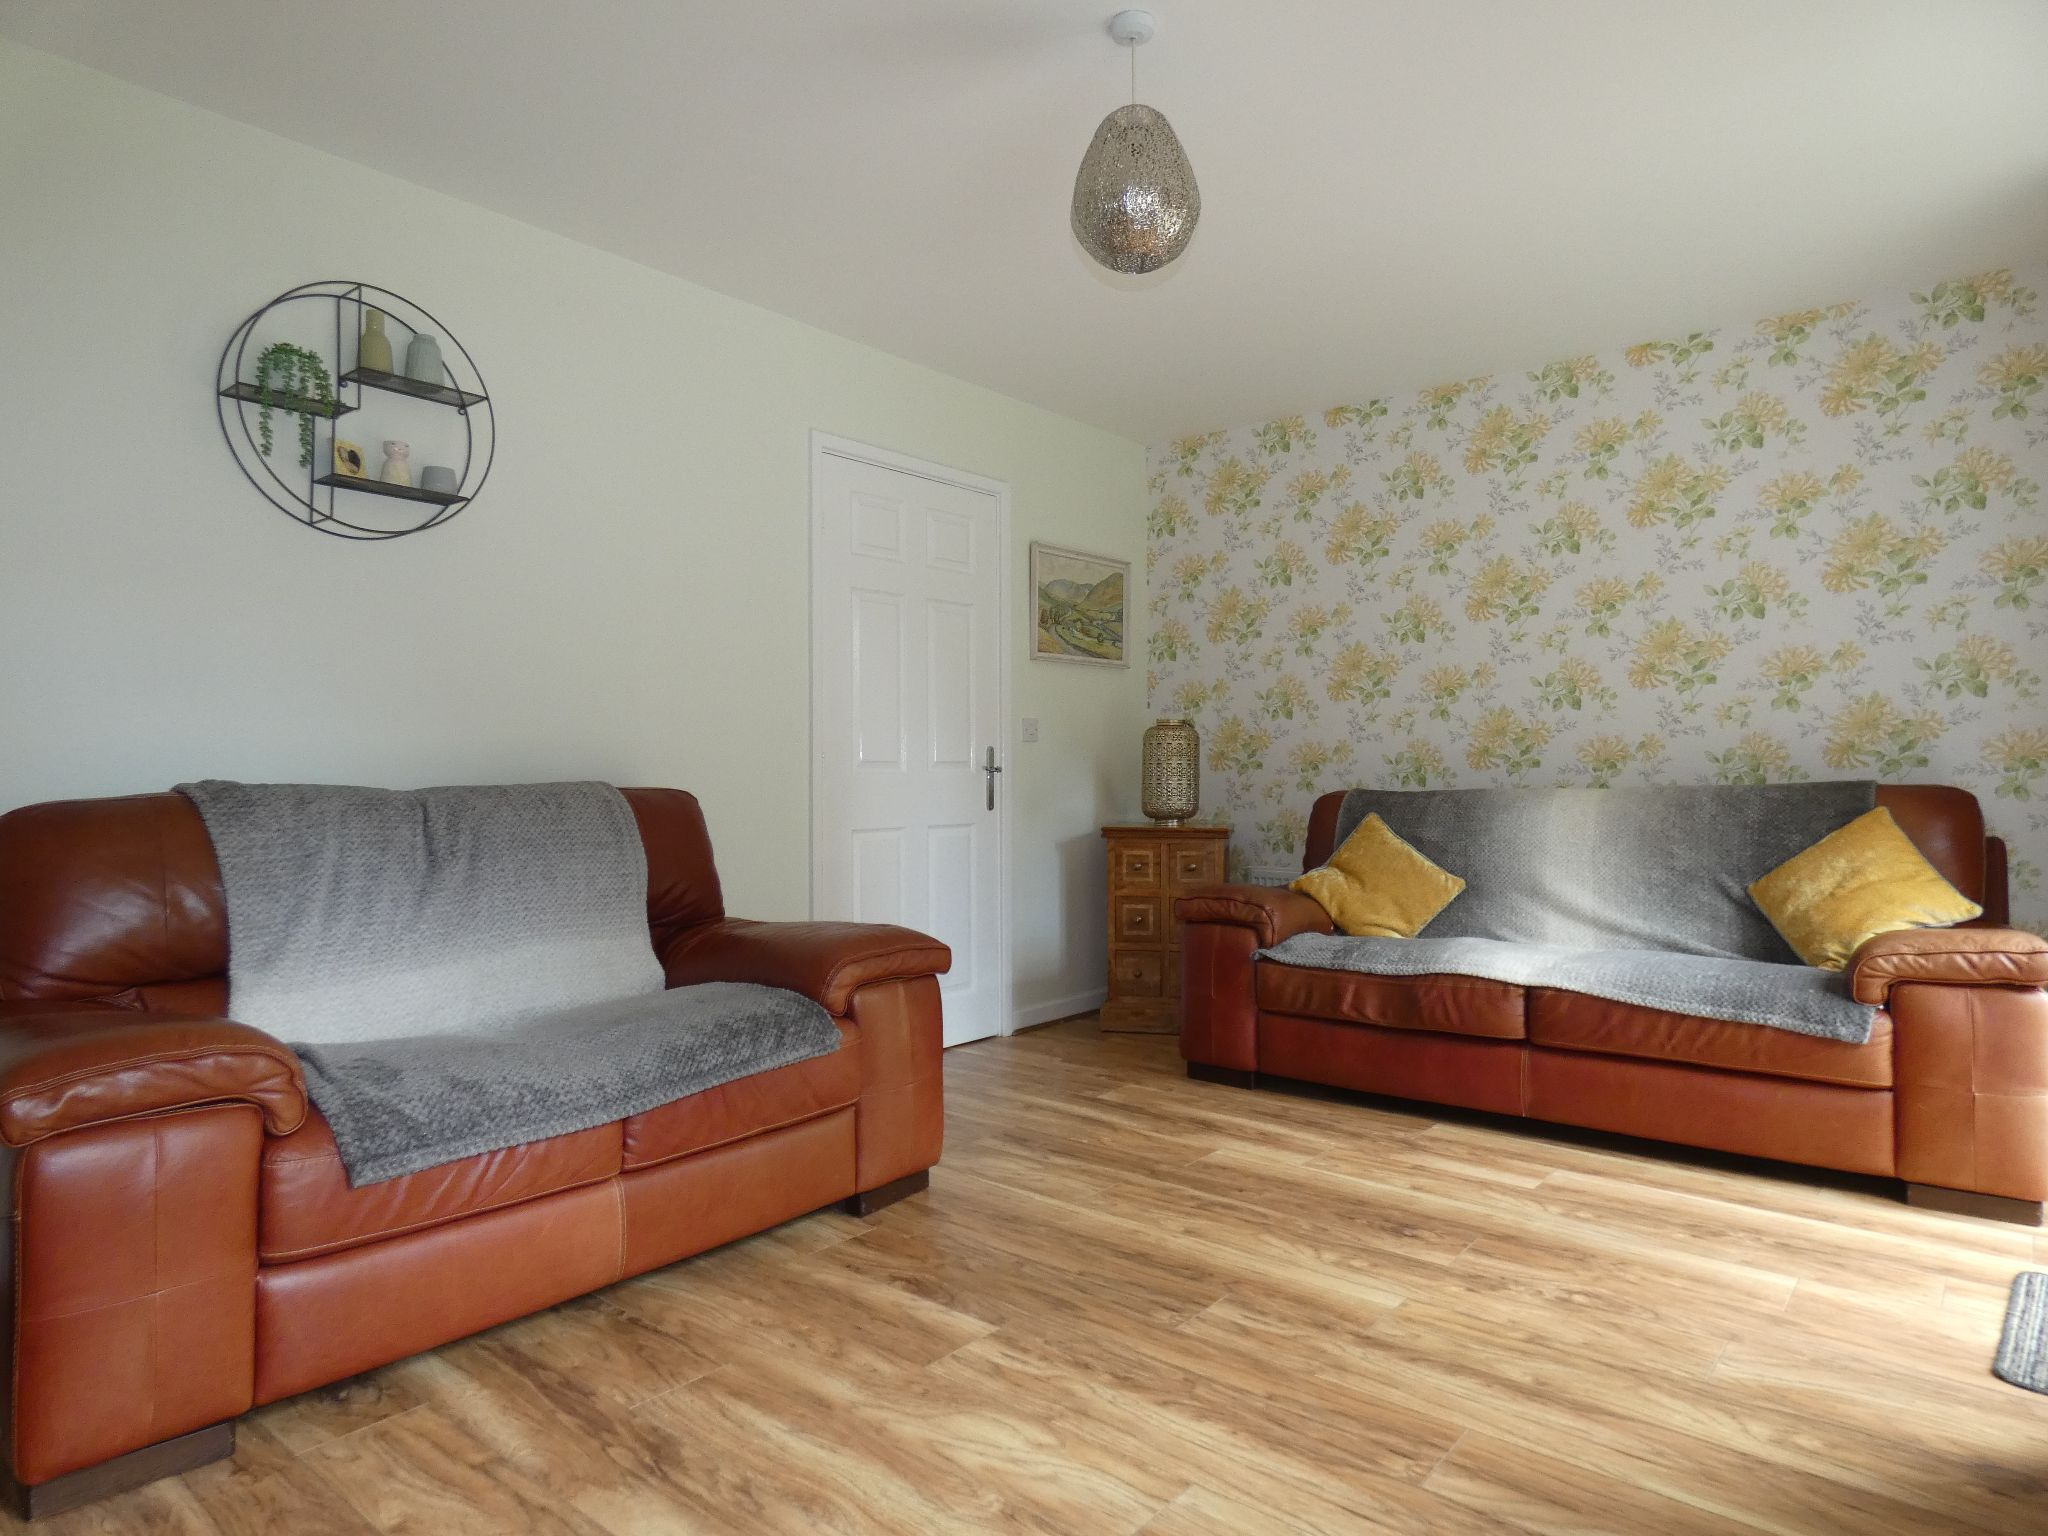 3 bedroom semi-detached house For Sale in Bishop Auckland - Lounge.